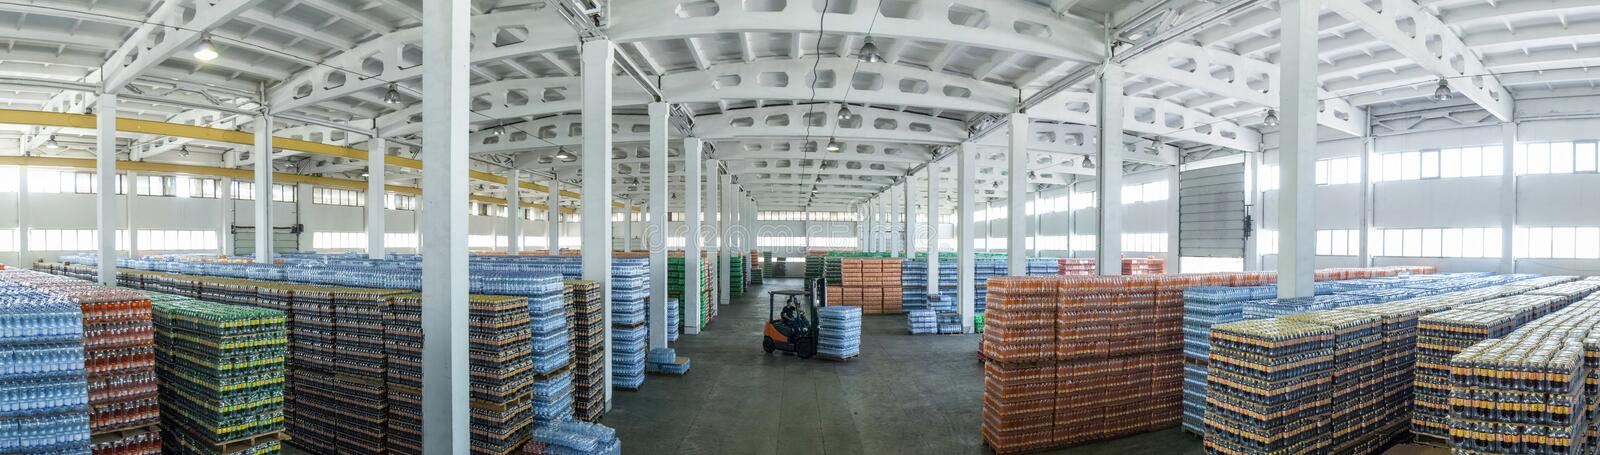 Large warehouse with drinks stock photos